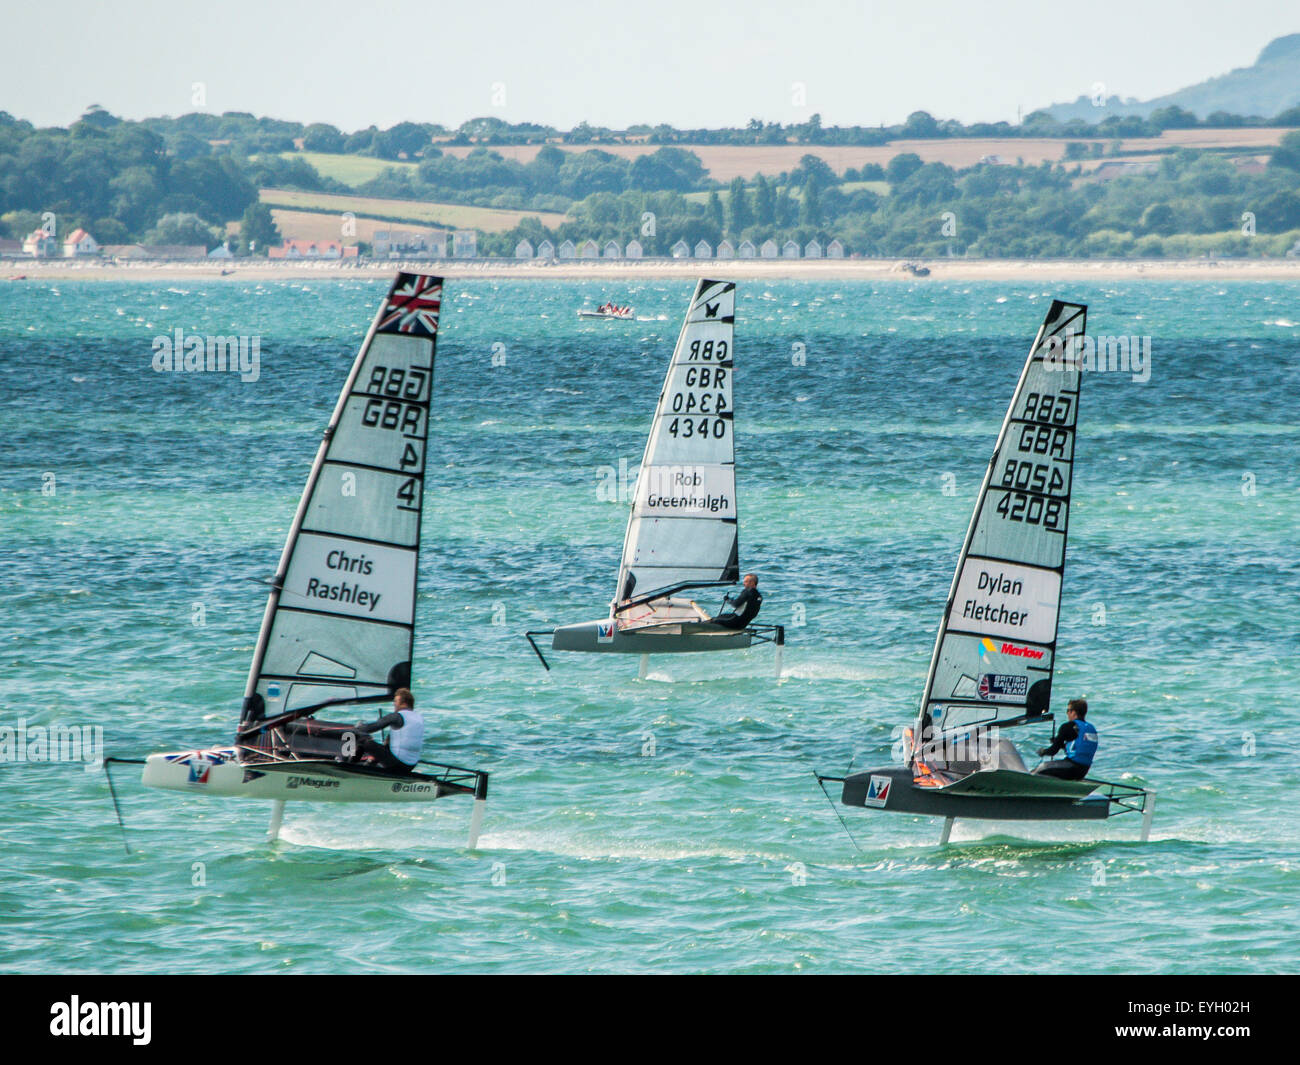 Chris Rashley, Rob Greenhaigh & Dylan Fletcher moth racing for team GBR in the Solent portsmouth - Stock Image